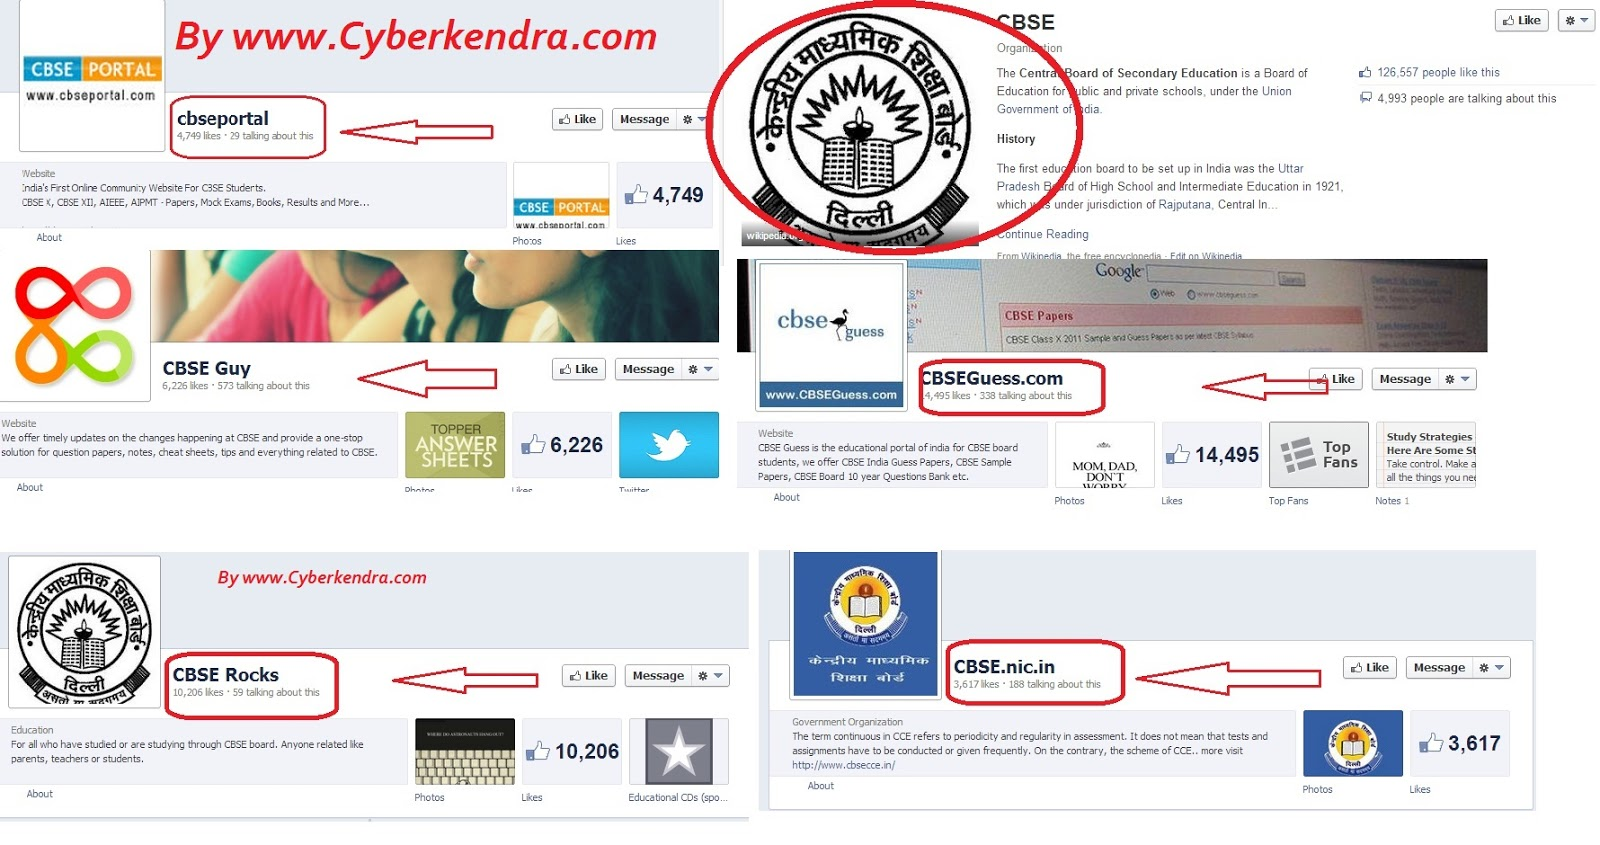 Aware of CBSE fake accounts - Cyber Kendra - Hacking News And Tech